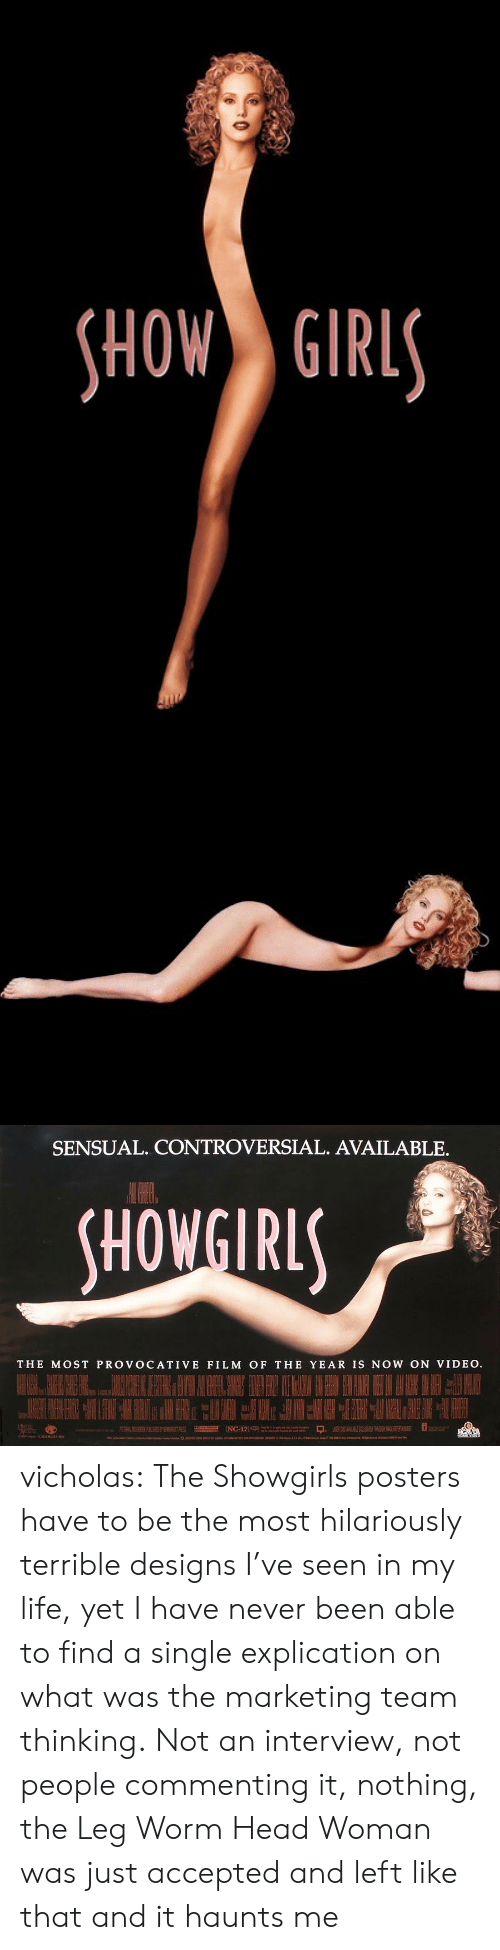 Head, Life, and Tumblr: HOW GIRL   SENSUAL. CONTROVERSIAL. AVAILABLE.  HOWGIRL  THE MOST PROVOCATIVE FILM OF THE YEAR IS NOW ON VIDEO vicholas:  The Showgirls posters have to be the most hilariously terrible designs I've seen in my life, yet I have never been able to find a single explication on what was the marketing team thinking. Not an interview, not people commenting it, nothing, the Leg Worm Head Woman was just accepted and left like that and it haunts me